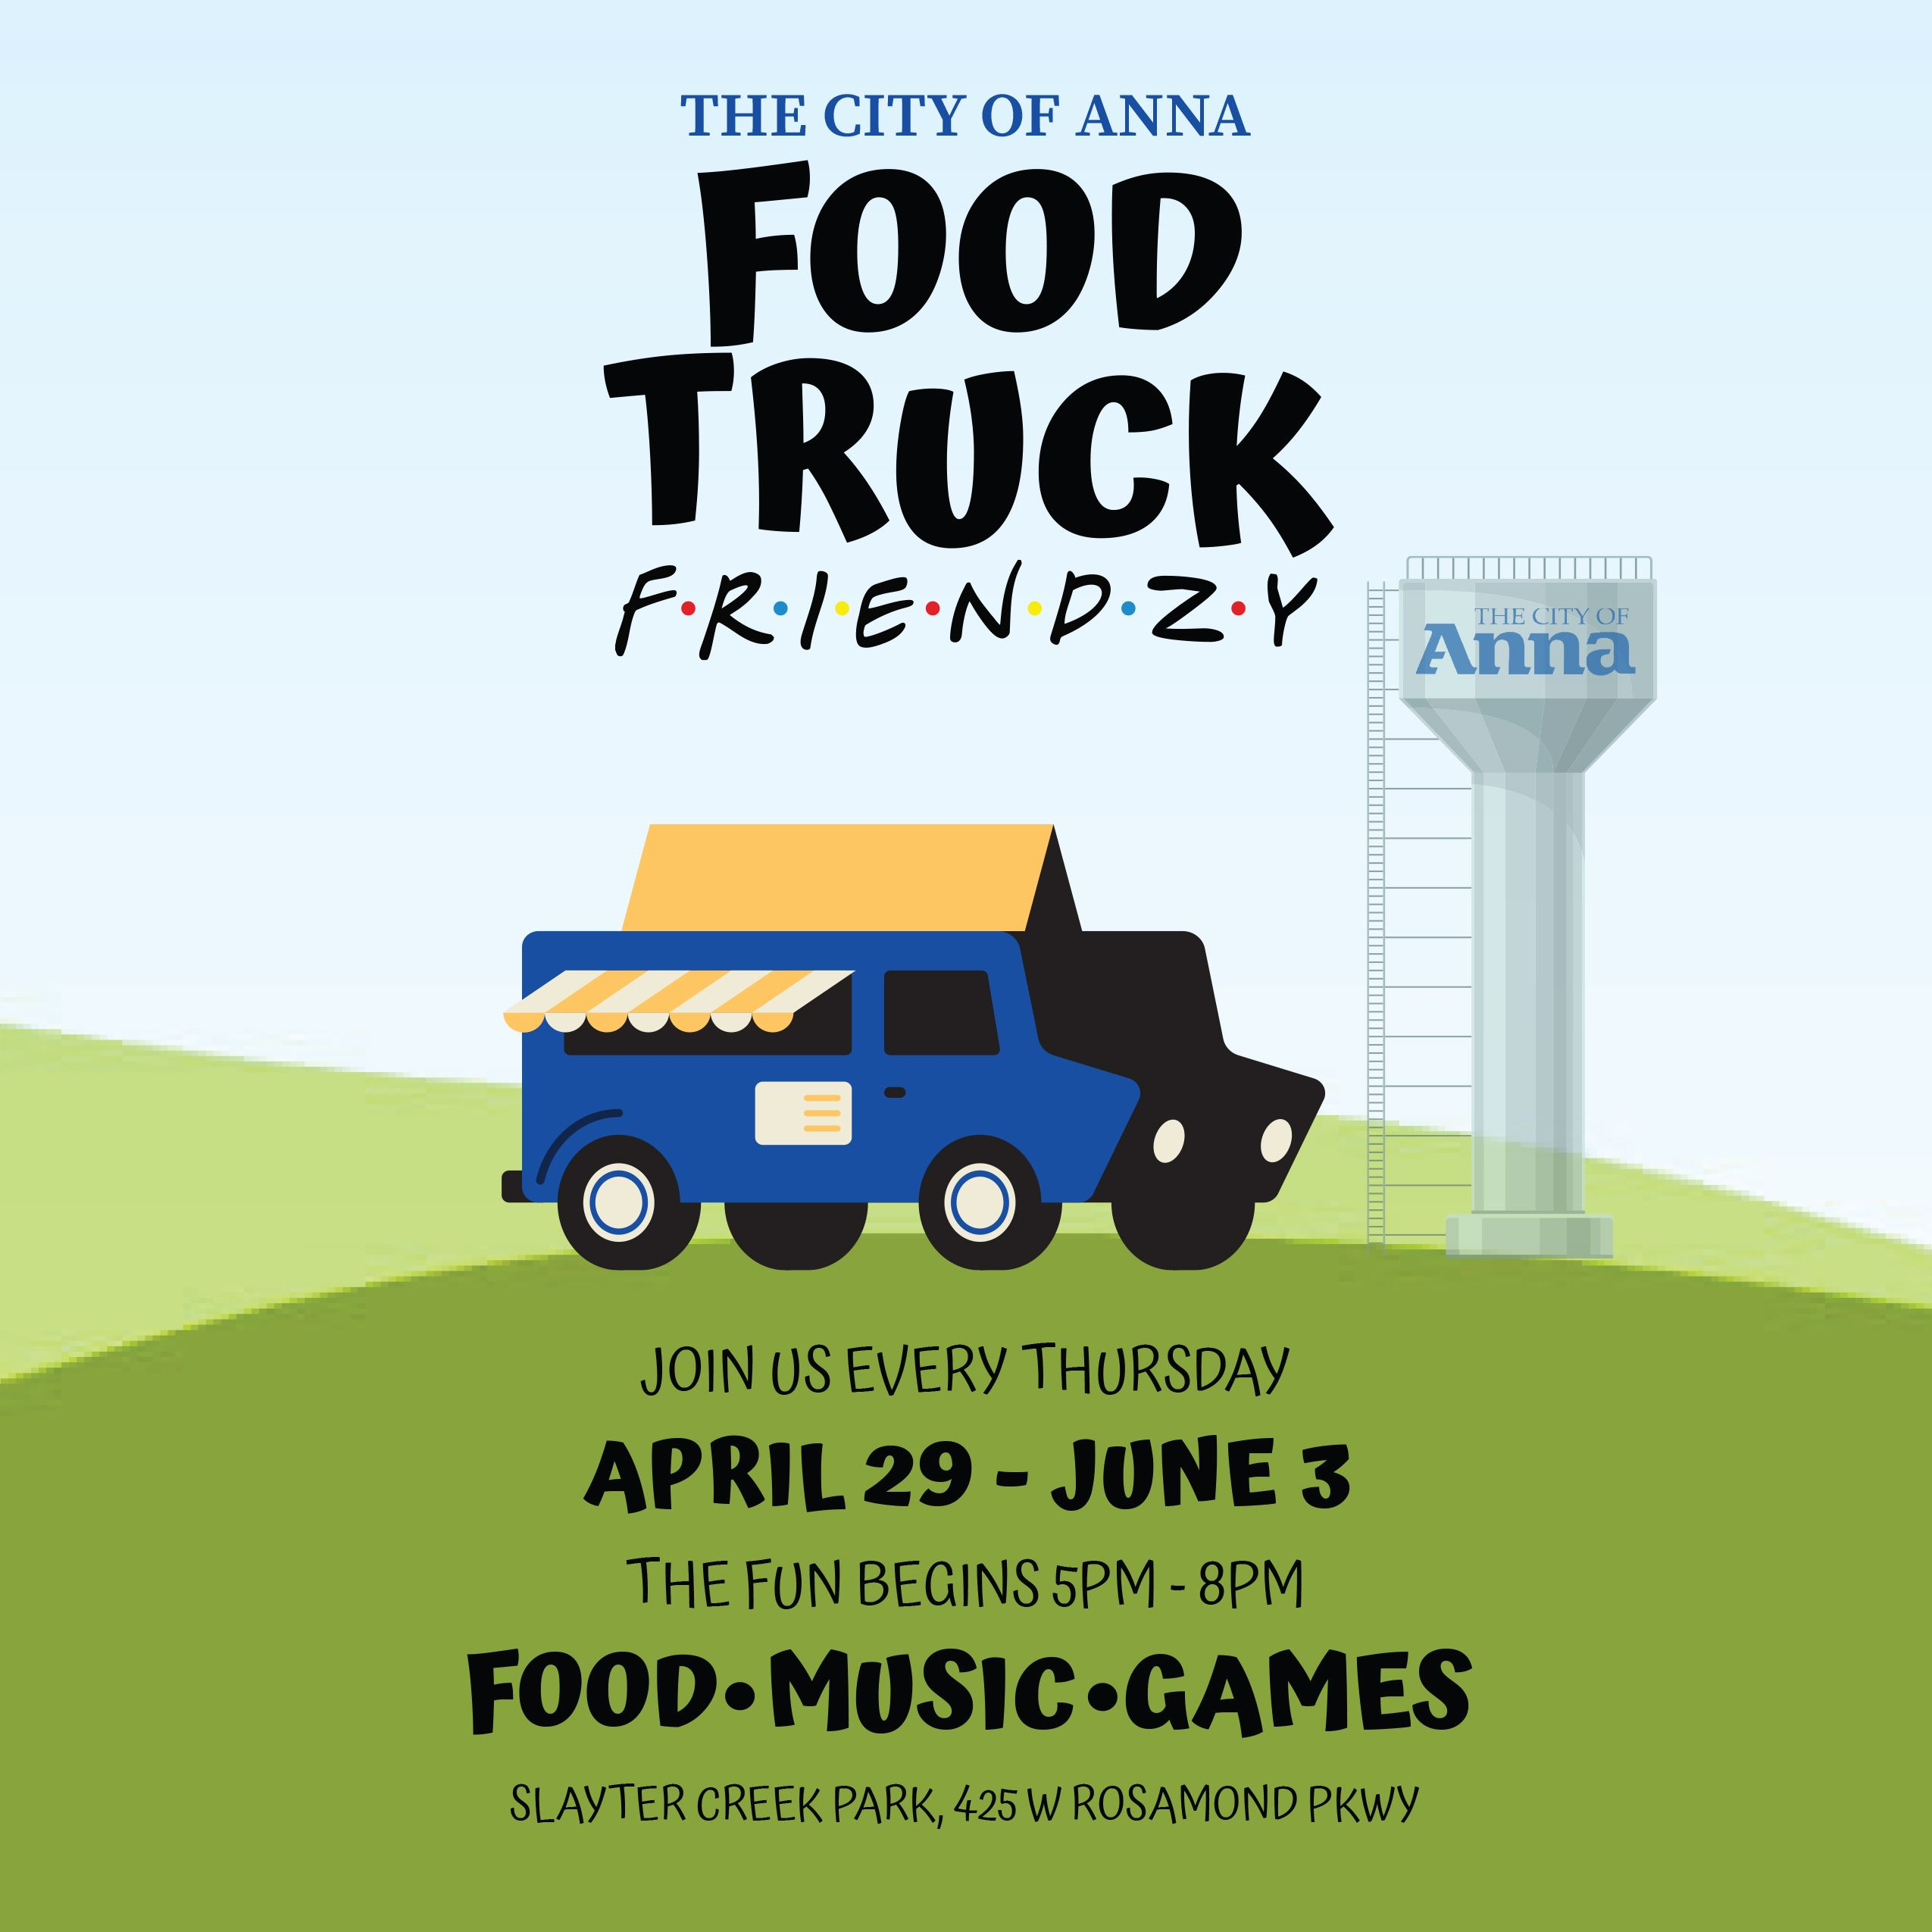 Our six-week-long Food Truck events begin Thursday, April 29, in Slayter Creek Park from 5-8pm.